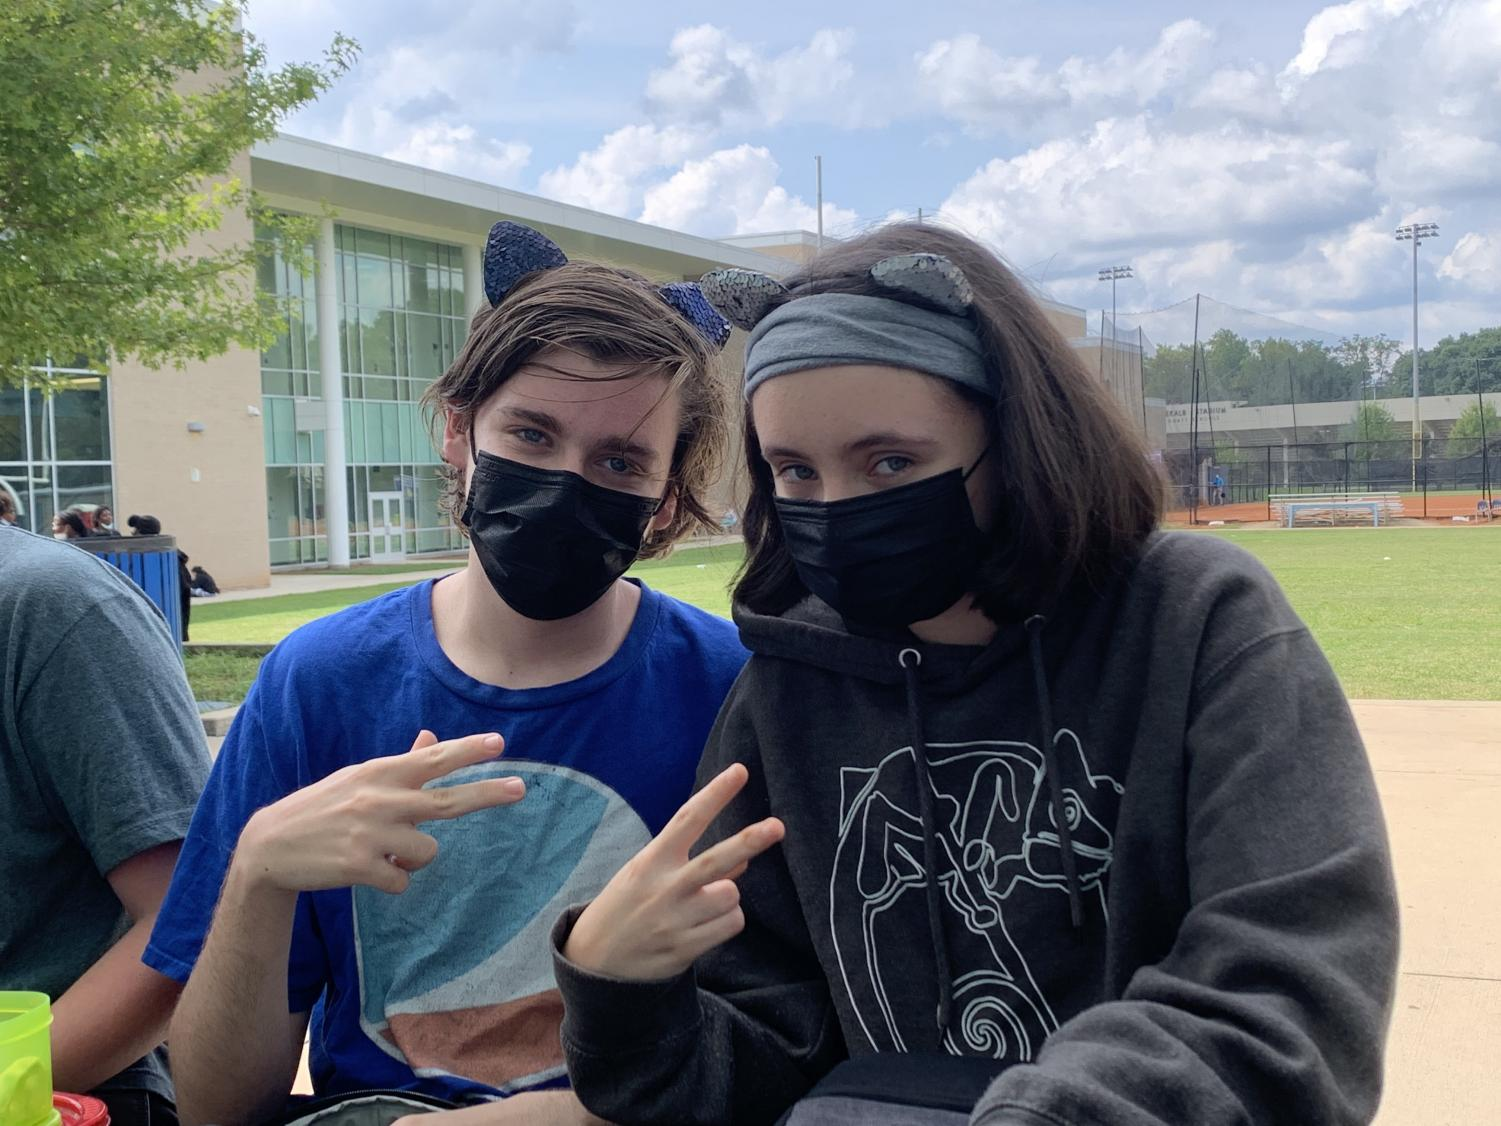 Students Owen Thorp (left) and Camille Thorp (right) pose with cat ears and peace signs